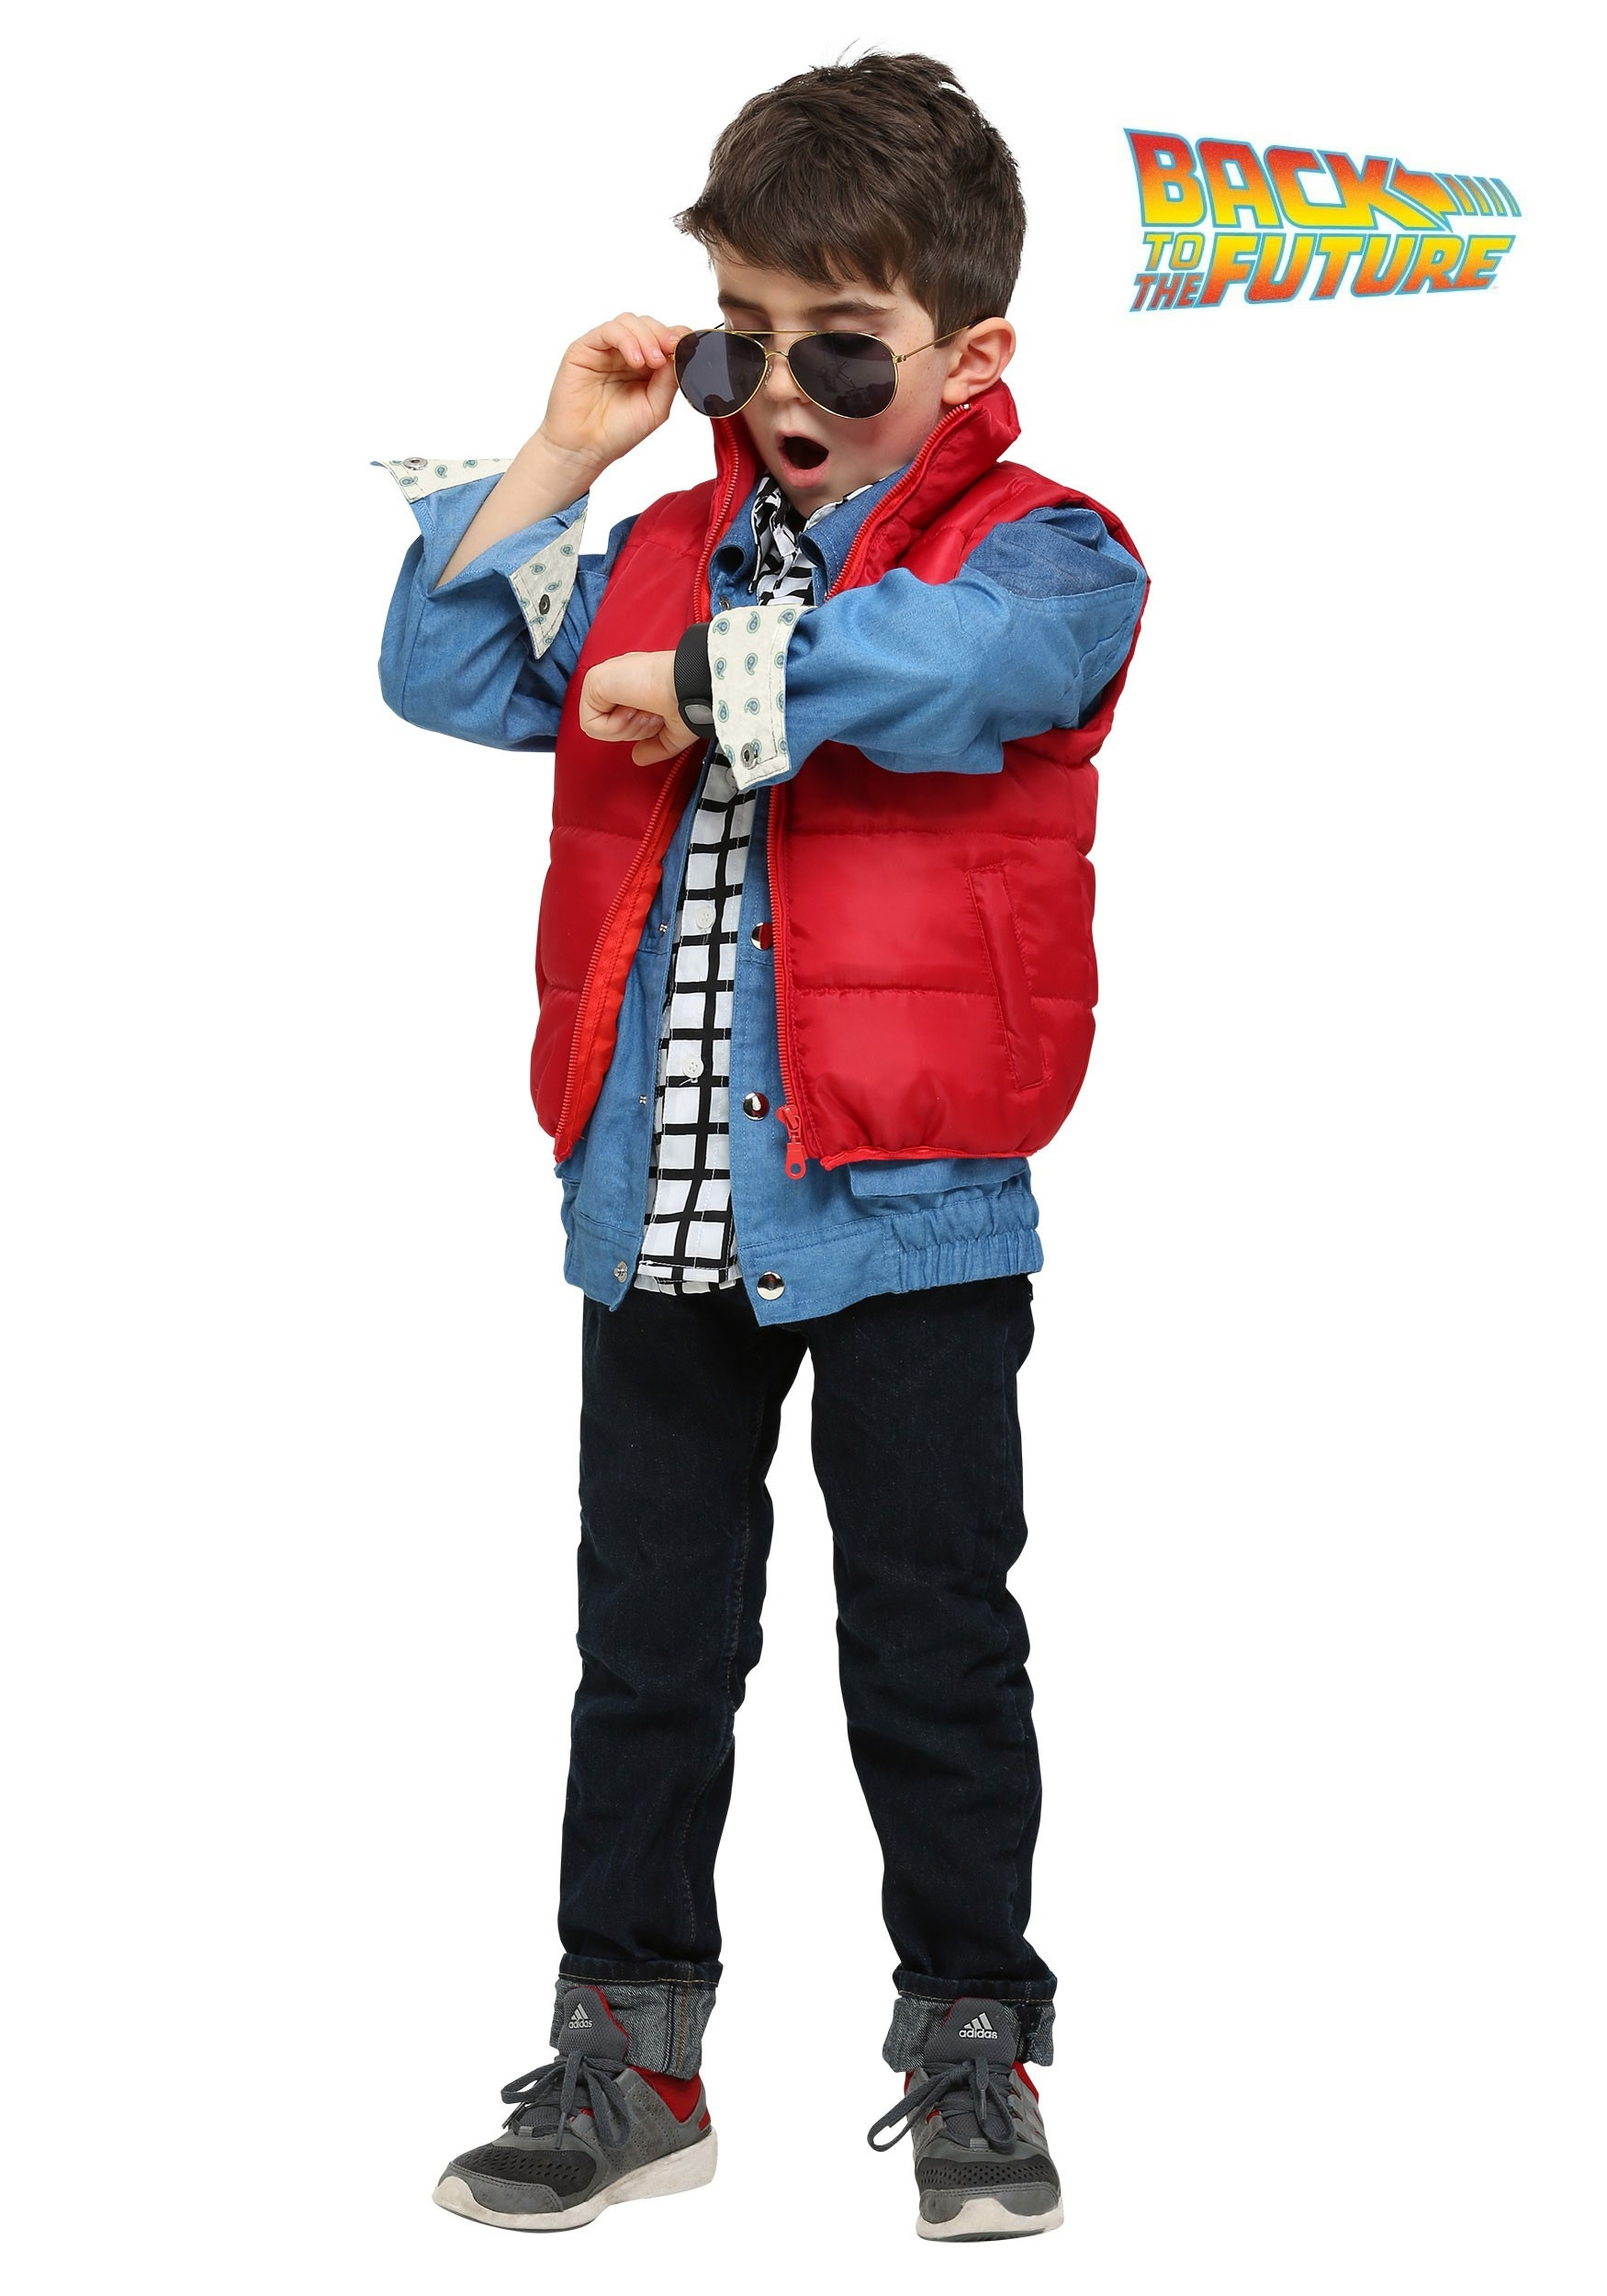 Back to the Future Marty McFly Toddler Costume  sc 1 st  Halloween Costumes & Toddler Halloween Costumes - HalloweenCostumes.com